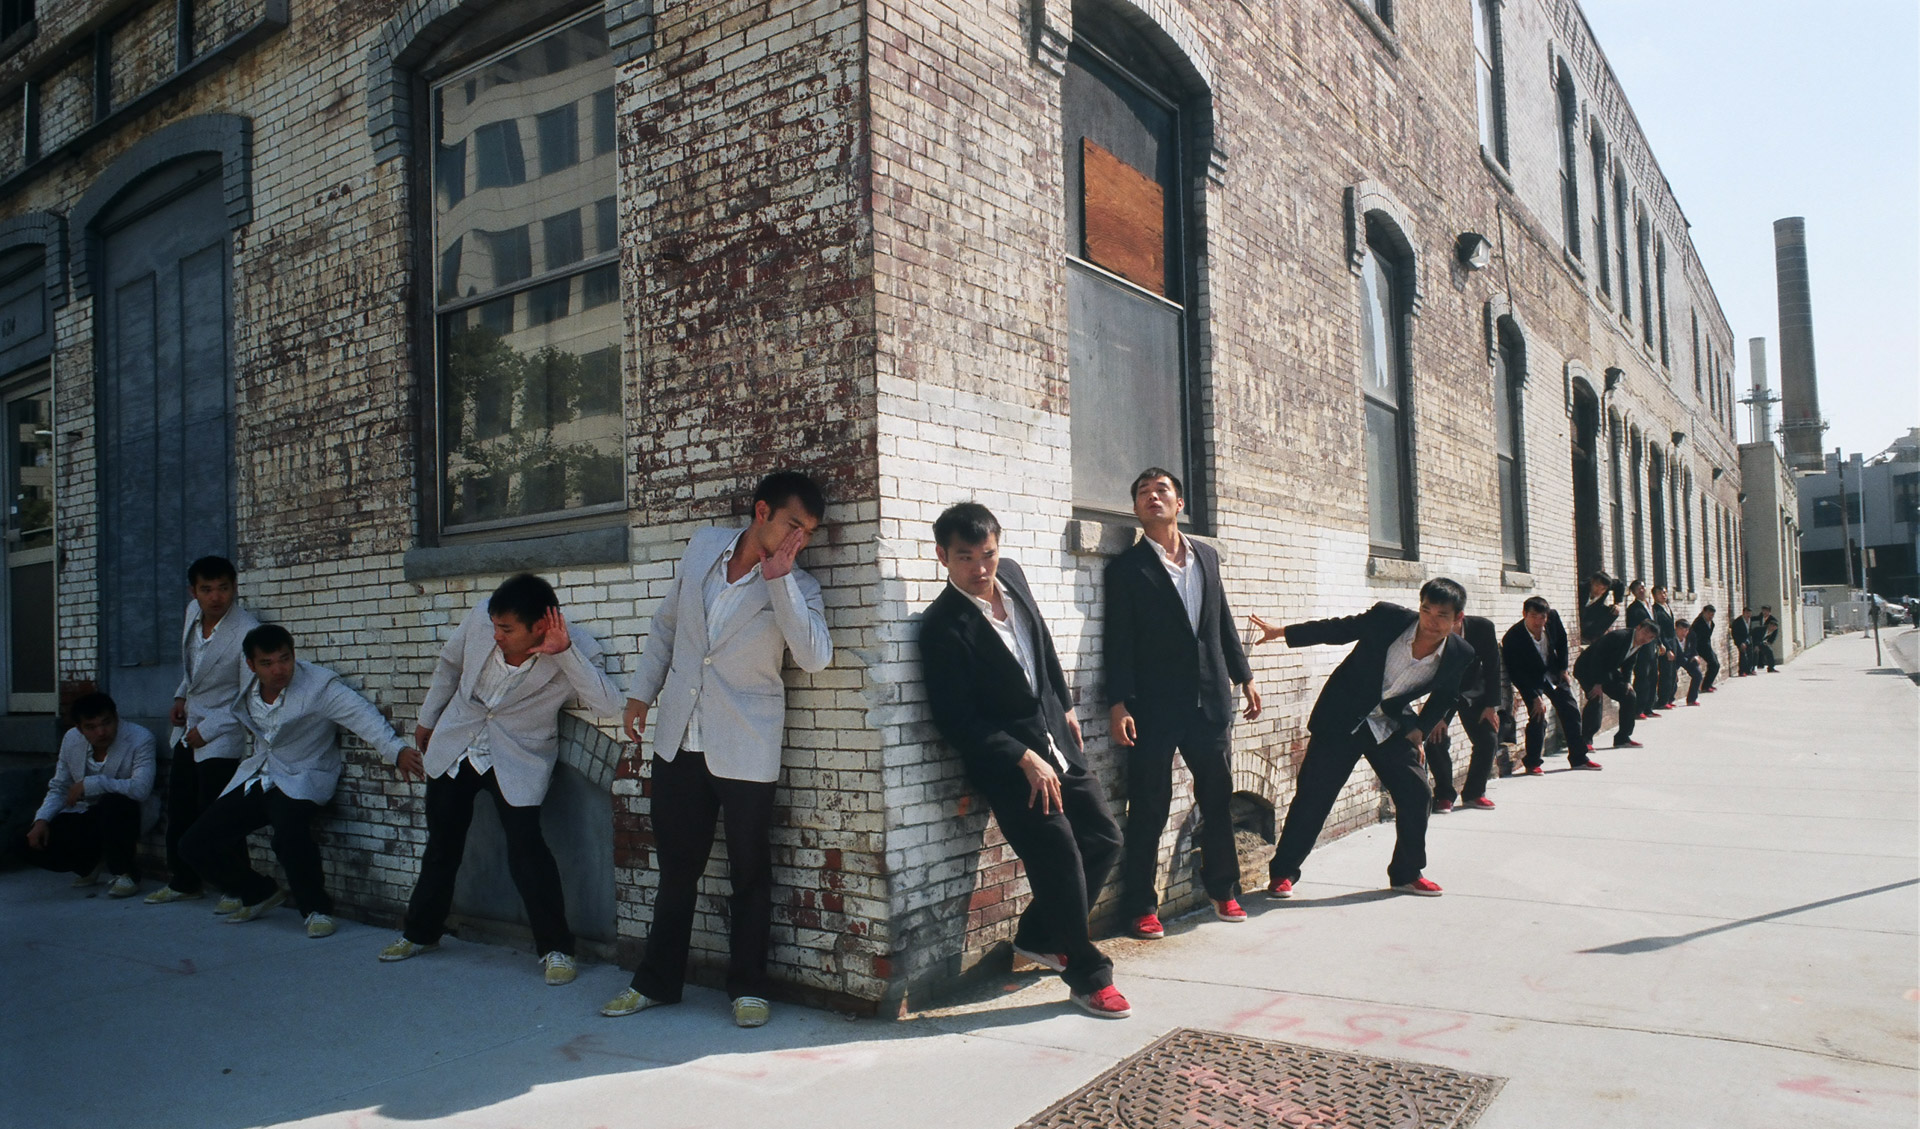 Two groups of asian guys on a corner. One in dark suits, one in white suits with the two members at the corner whispering to each other and everyone else trying to listen in.